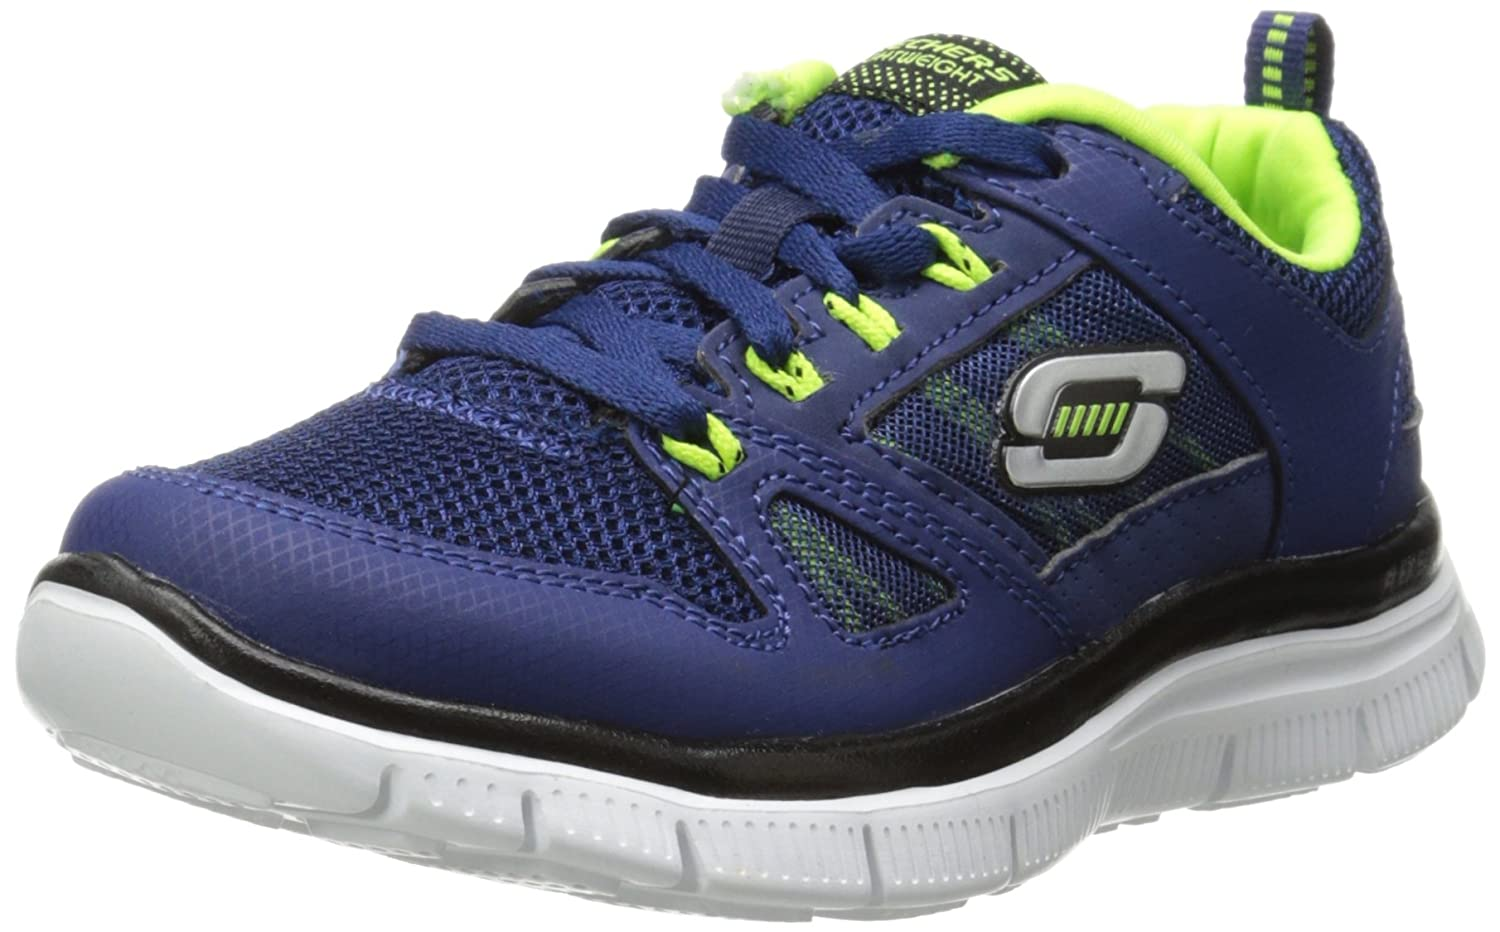 Skechers Kids Flex Advantage Athletic School Shoe (Little Kid/Big Kid) Skechers Kids Footwear 95521L